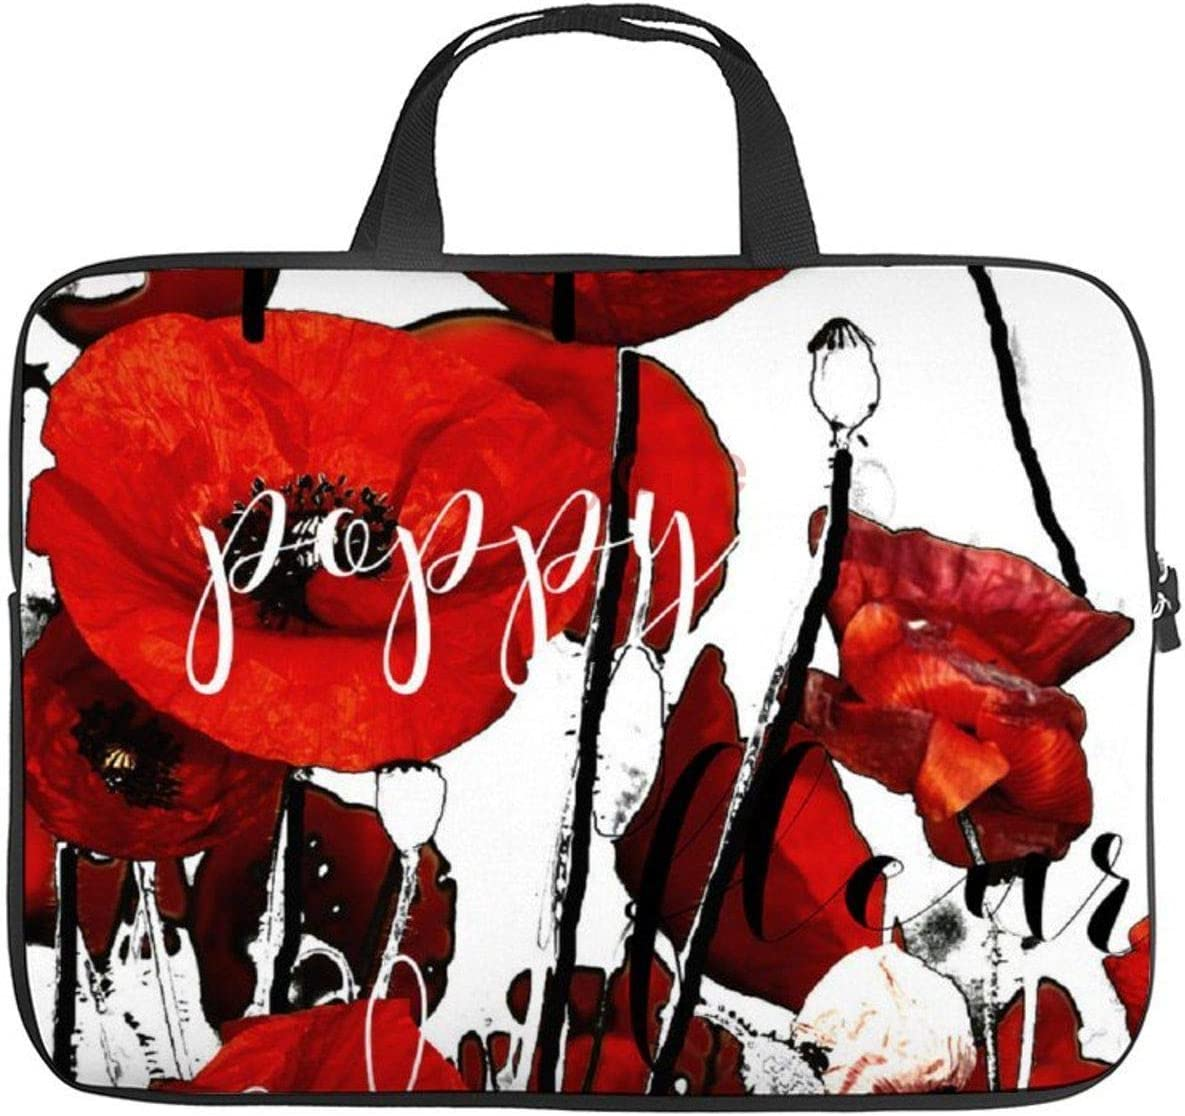 """Neoprene Sleeve Laptop Handbag Case Cover Red Poppies 10 Inch Laptop Sleeve Case for 9.7"""" 10.5"""" Ipad Pro Air/ 10"""" Microsoft Surface Go/ 10.5"""" Samsung Galaxy Tab"""